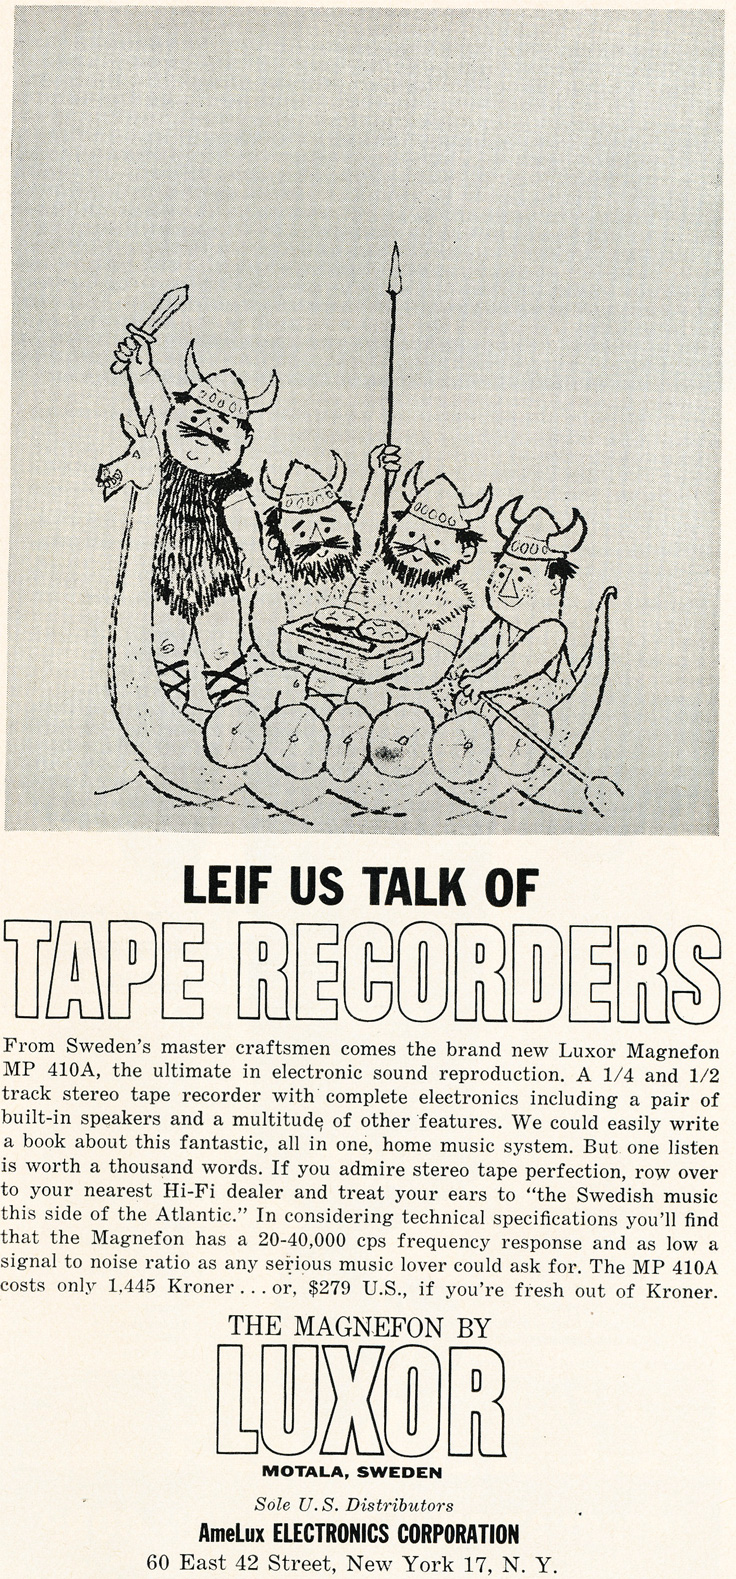 1961 ad for the Luxor reel to reel tape recorder in Reel2ReelTexas.com's vintage recording collection